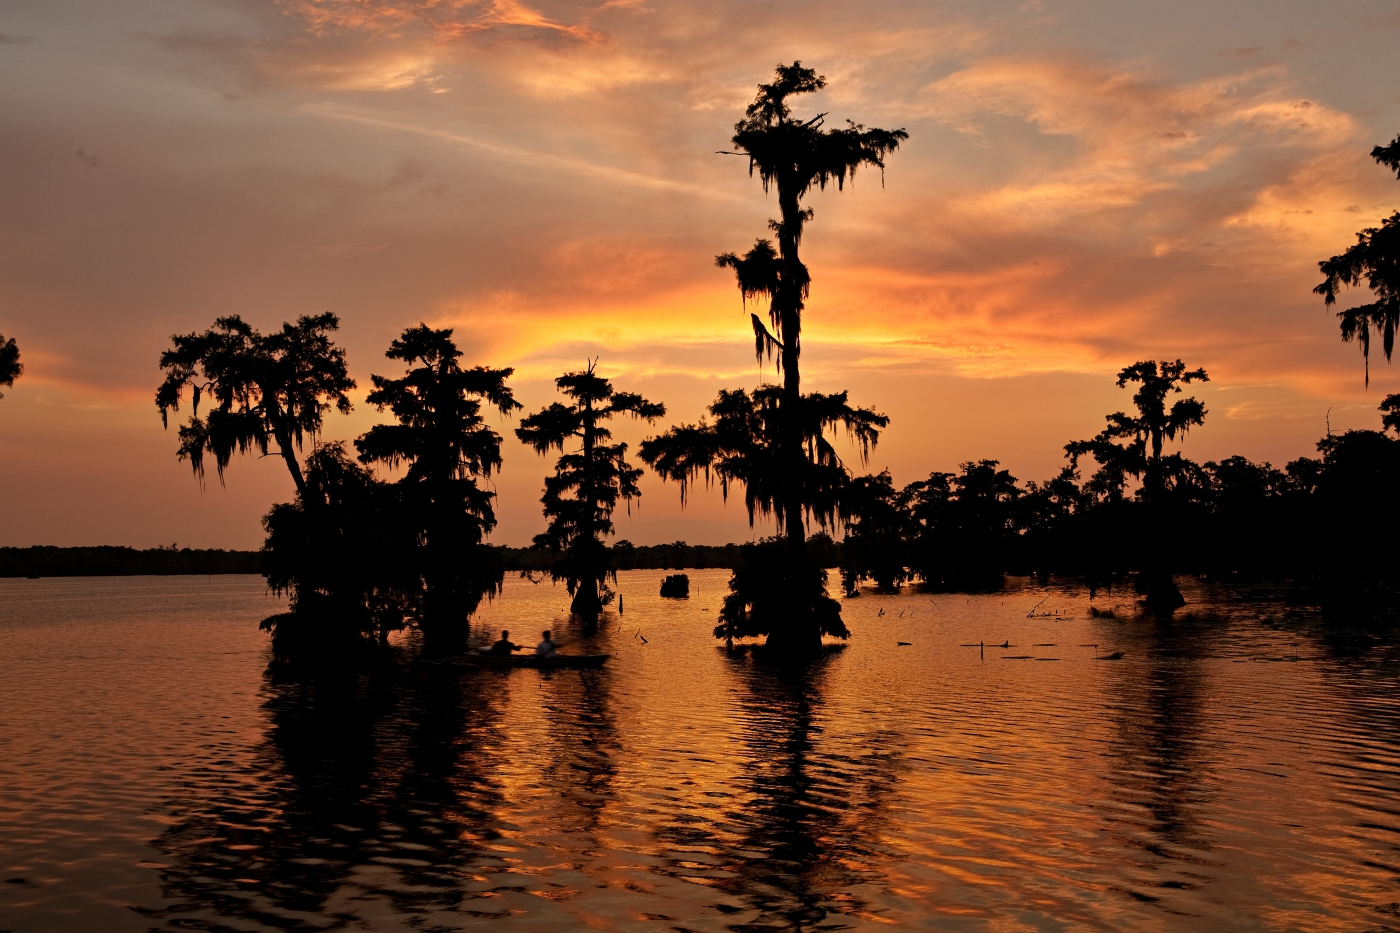 You'll see beautiful wildlife and sunsets in Louisiana.